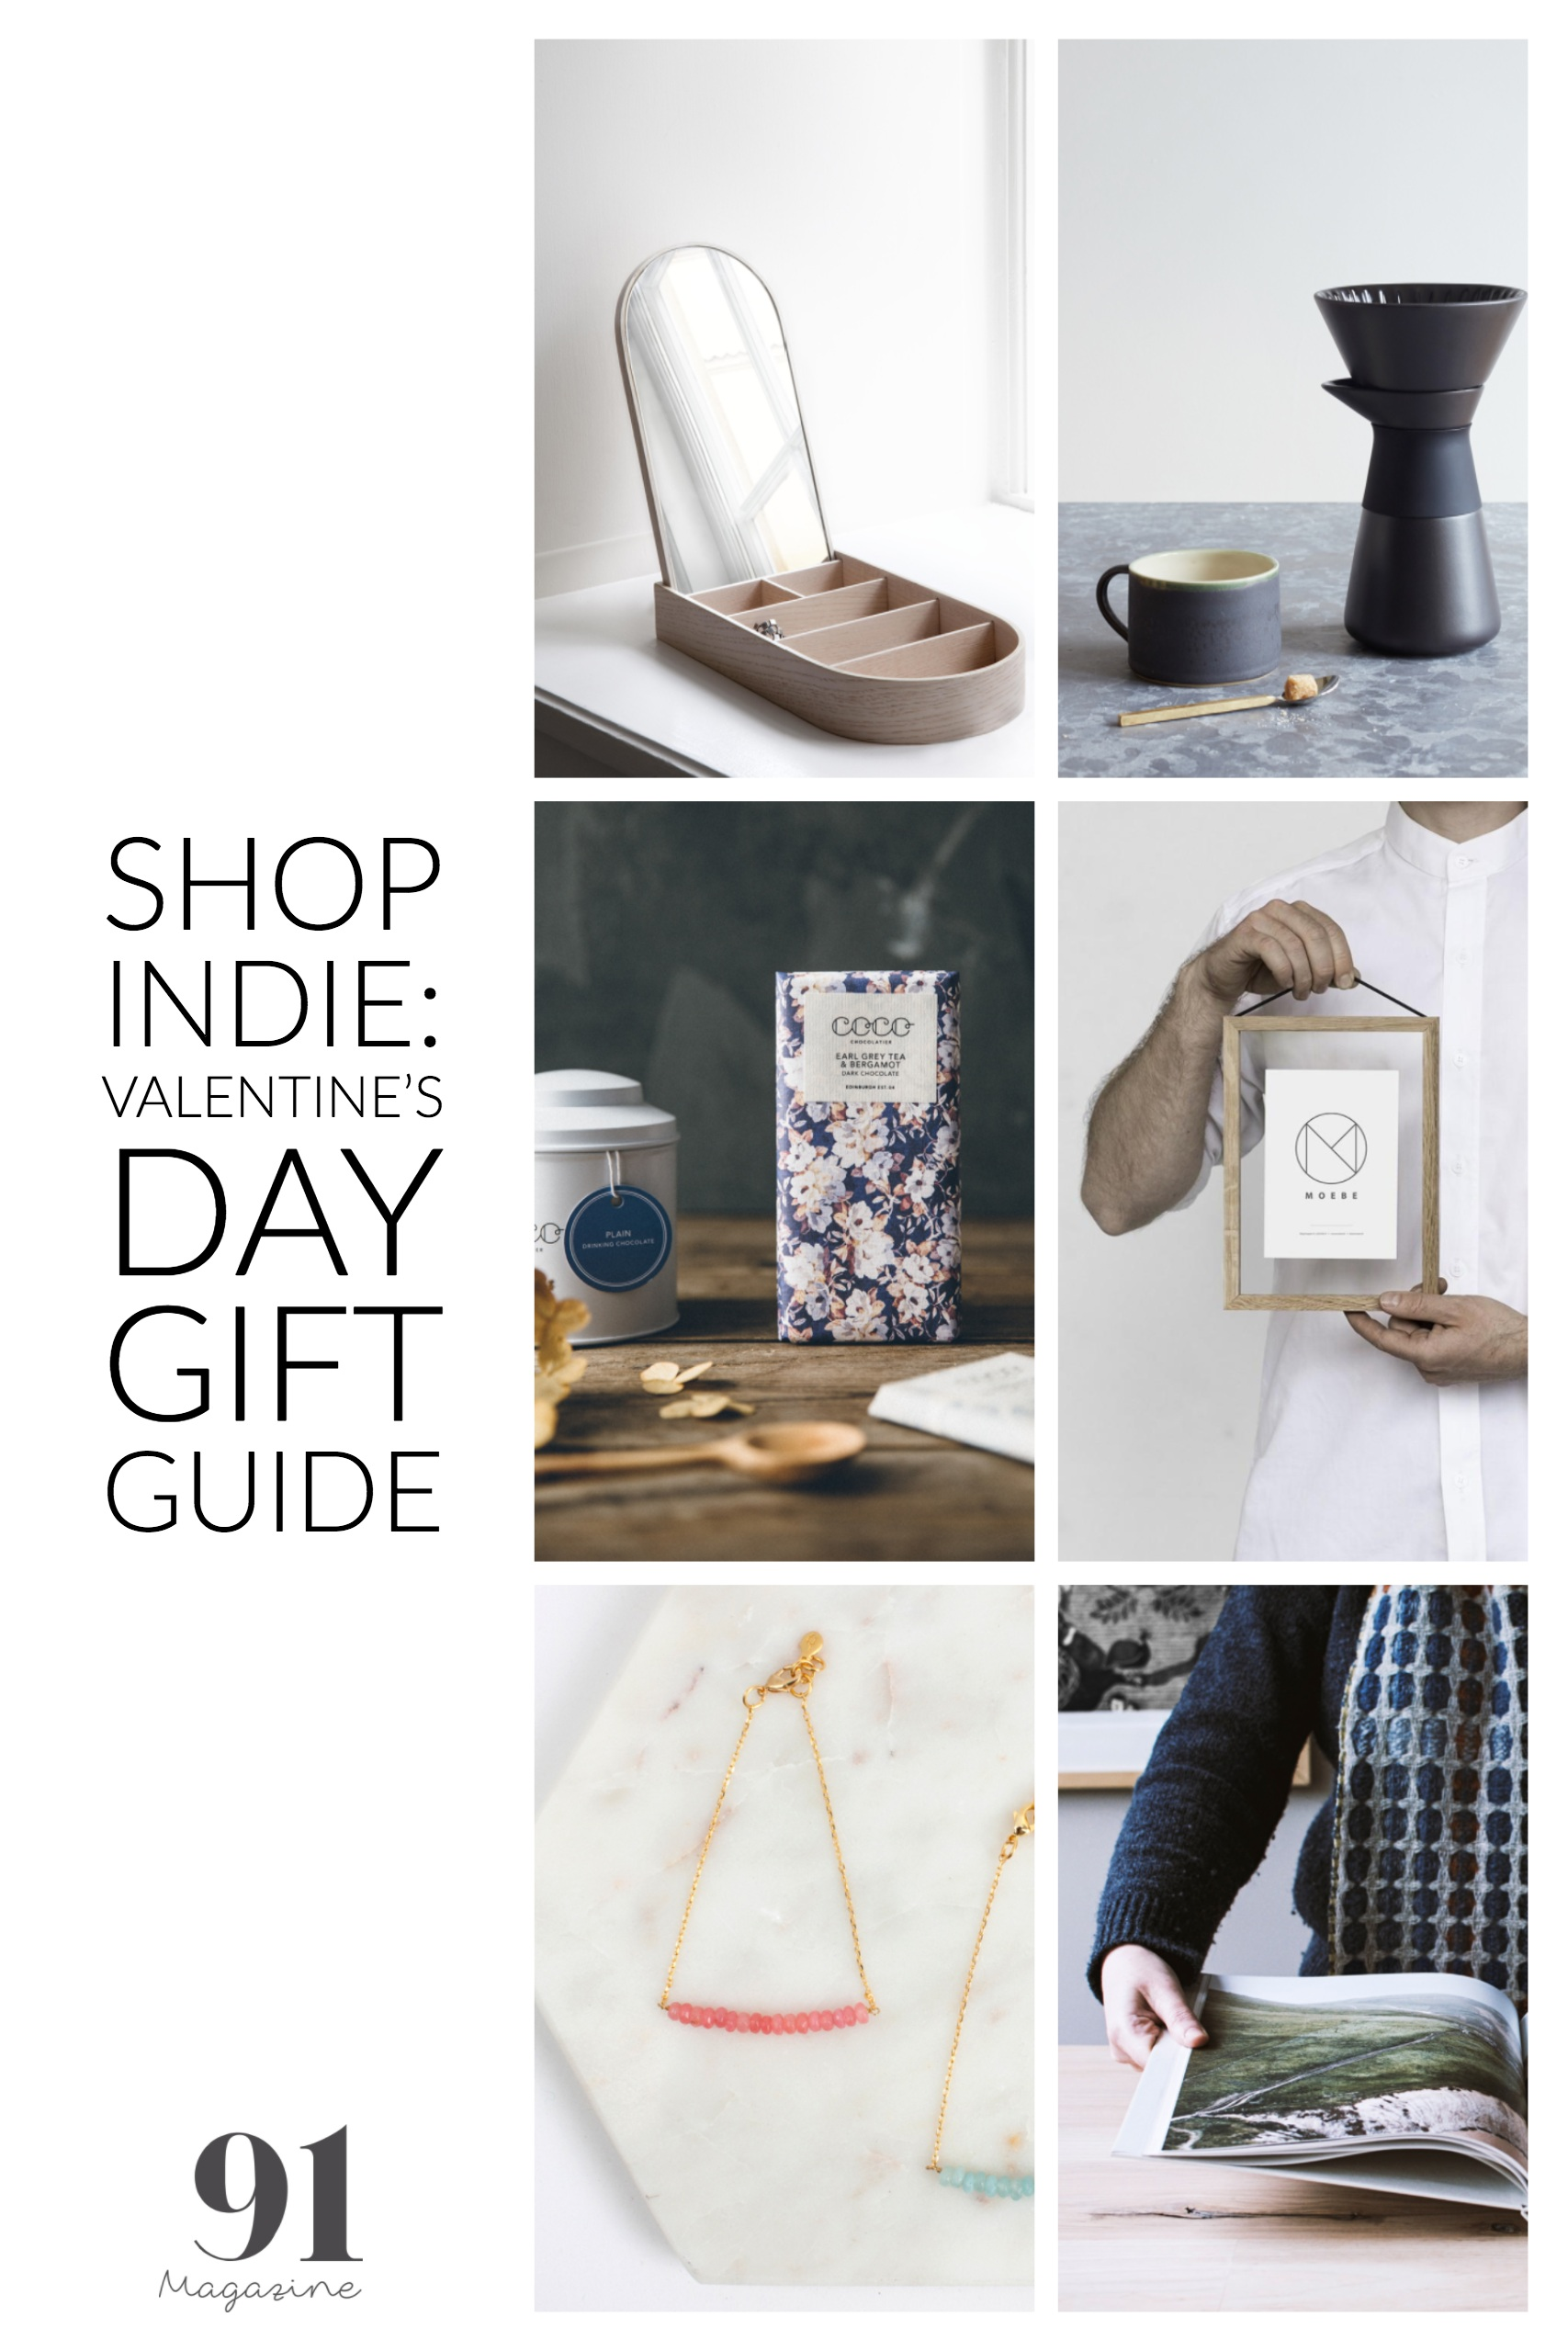 Shop independent this Valentines Day - Gift Guide by 91 Magazine